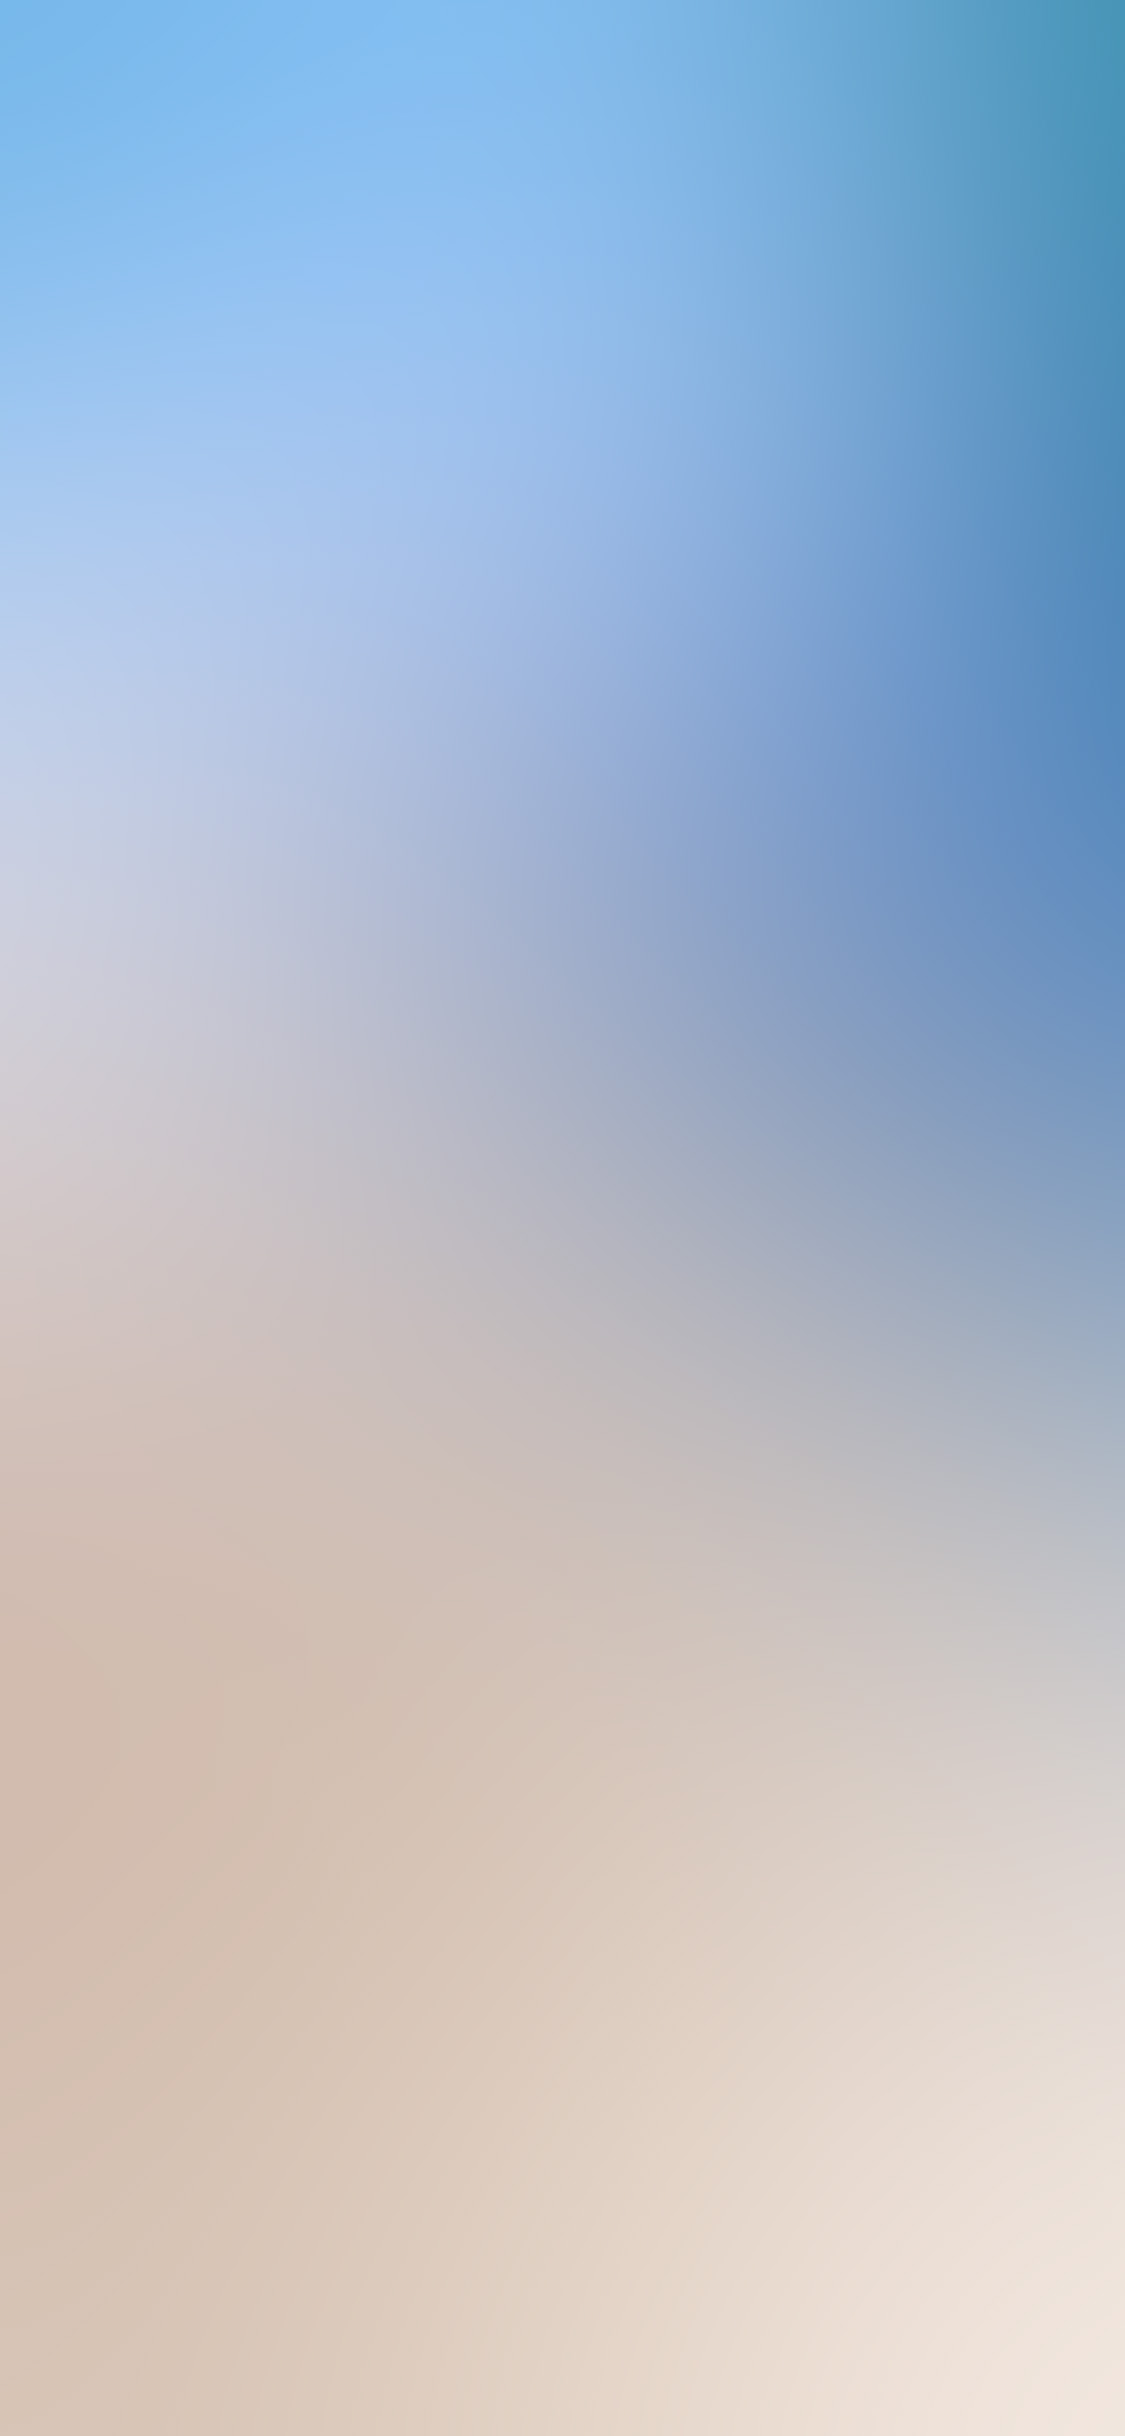 iPhonexpapers.com-Apple-iPhone-wallpaper-sn29-sky-blue-blur-gradation